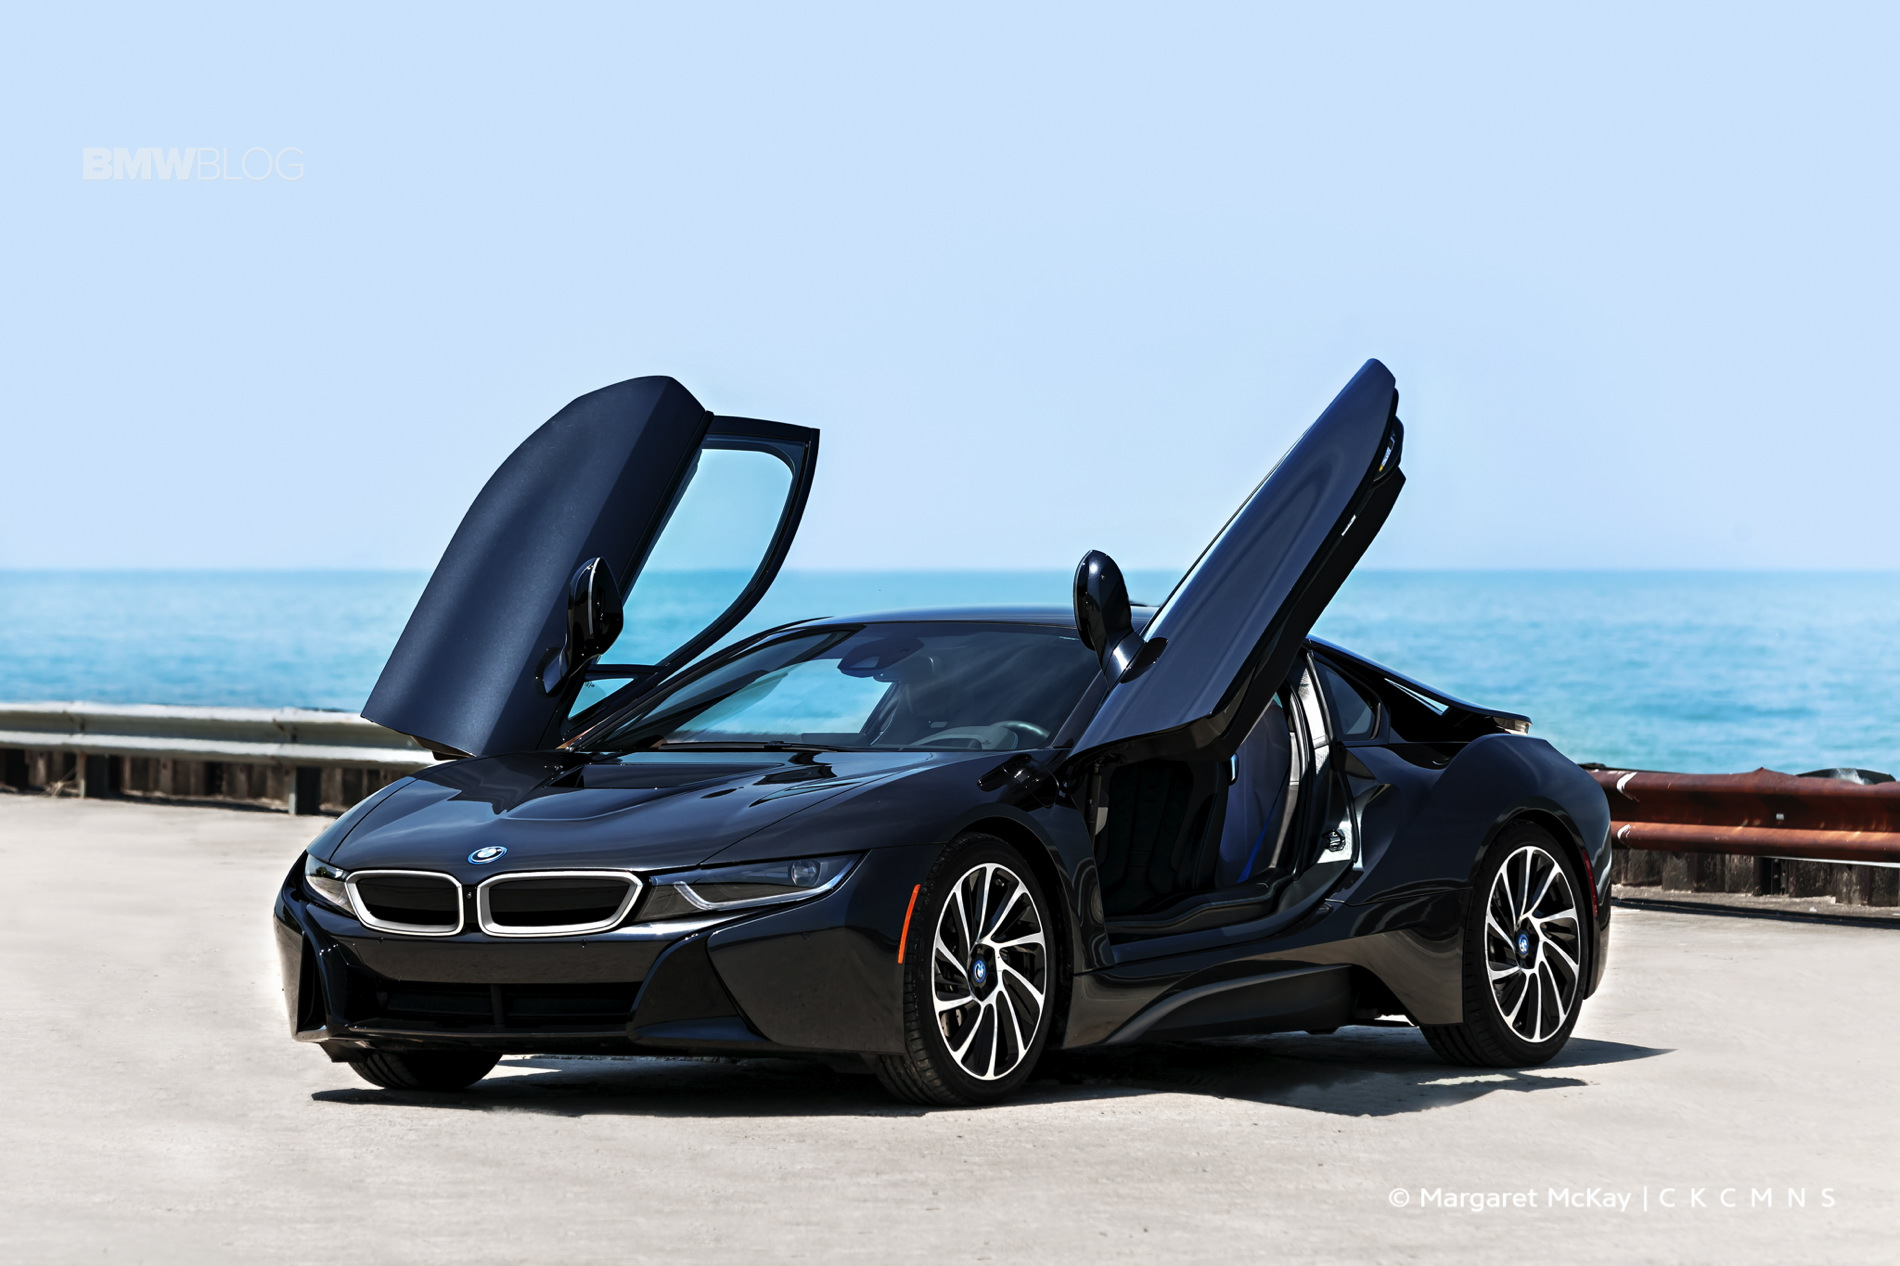 Gus Malzahn Of Auburn University Now Owns A Bmw I8